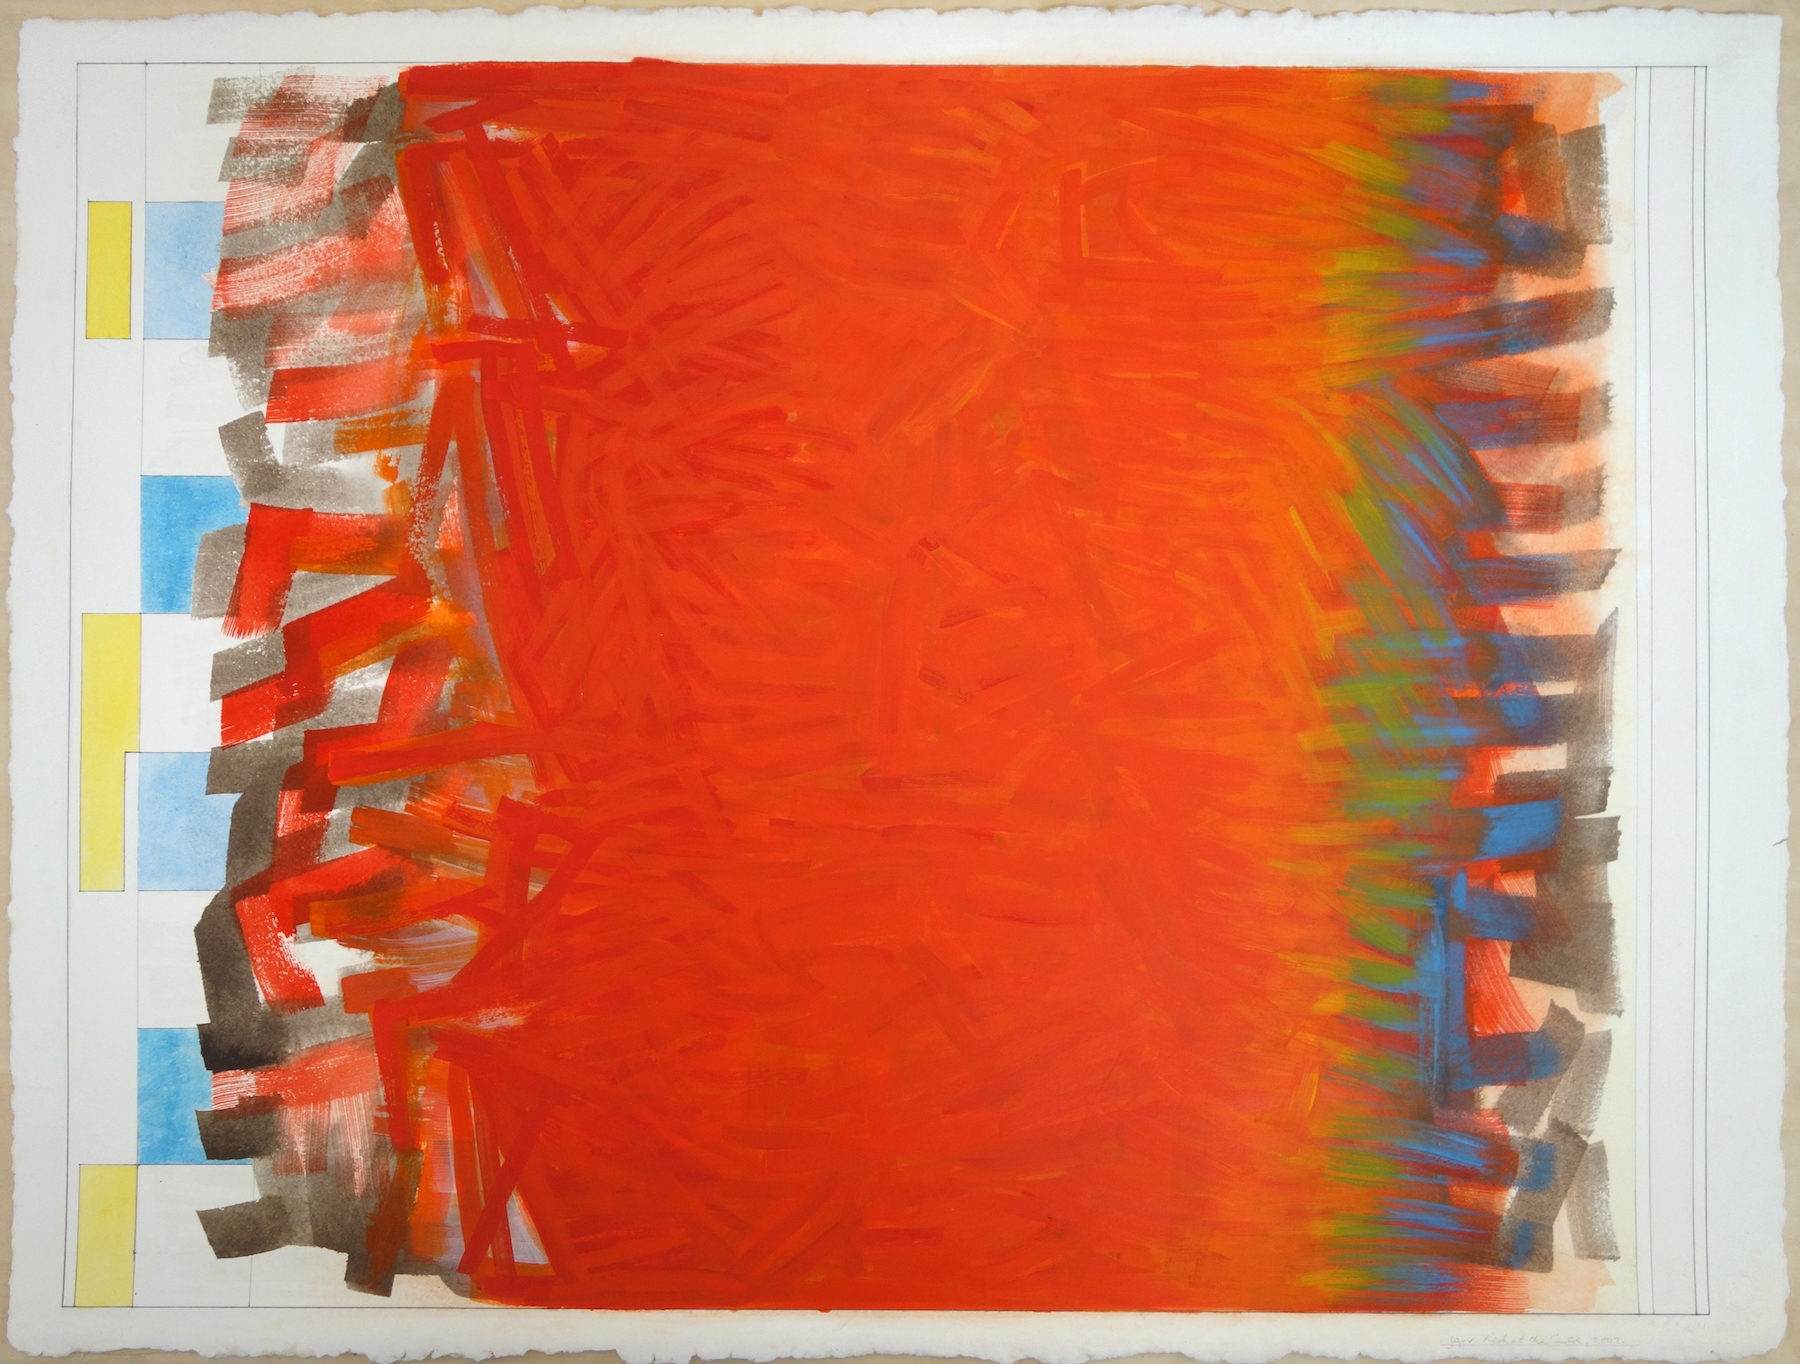 """Red at the Centre, 2001. Gouache on Paper. 22""""x30"""" (paper); 21.25""""x28"""" (image)"""